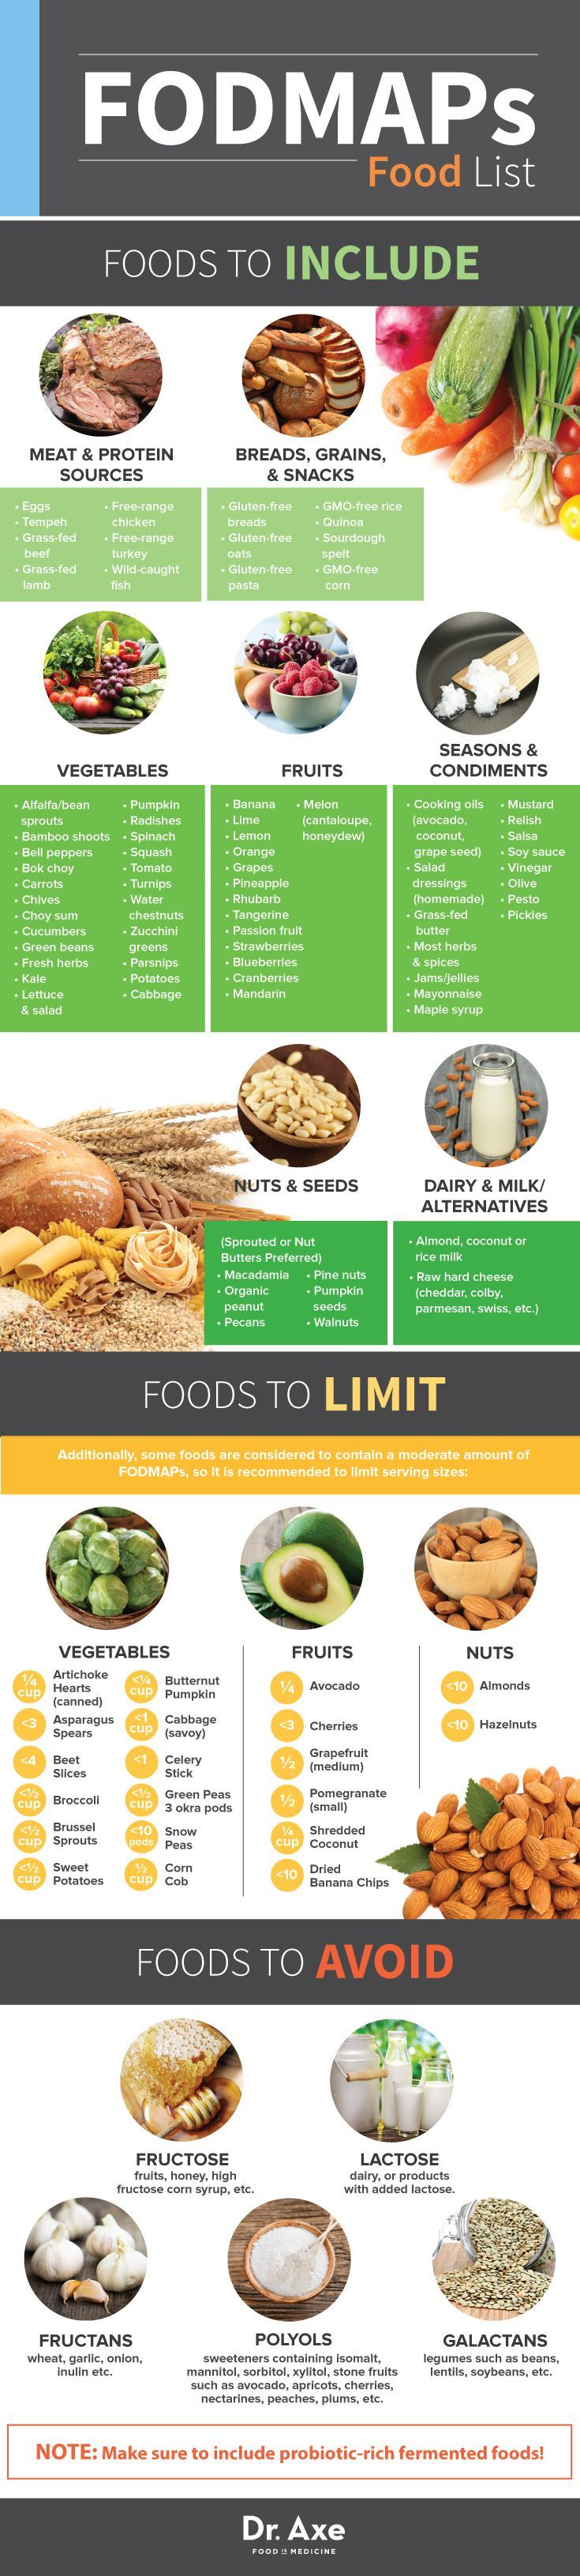 What are FODMAPs? Are they the key to HEAL IBS?FODMAPs Food List